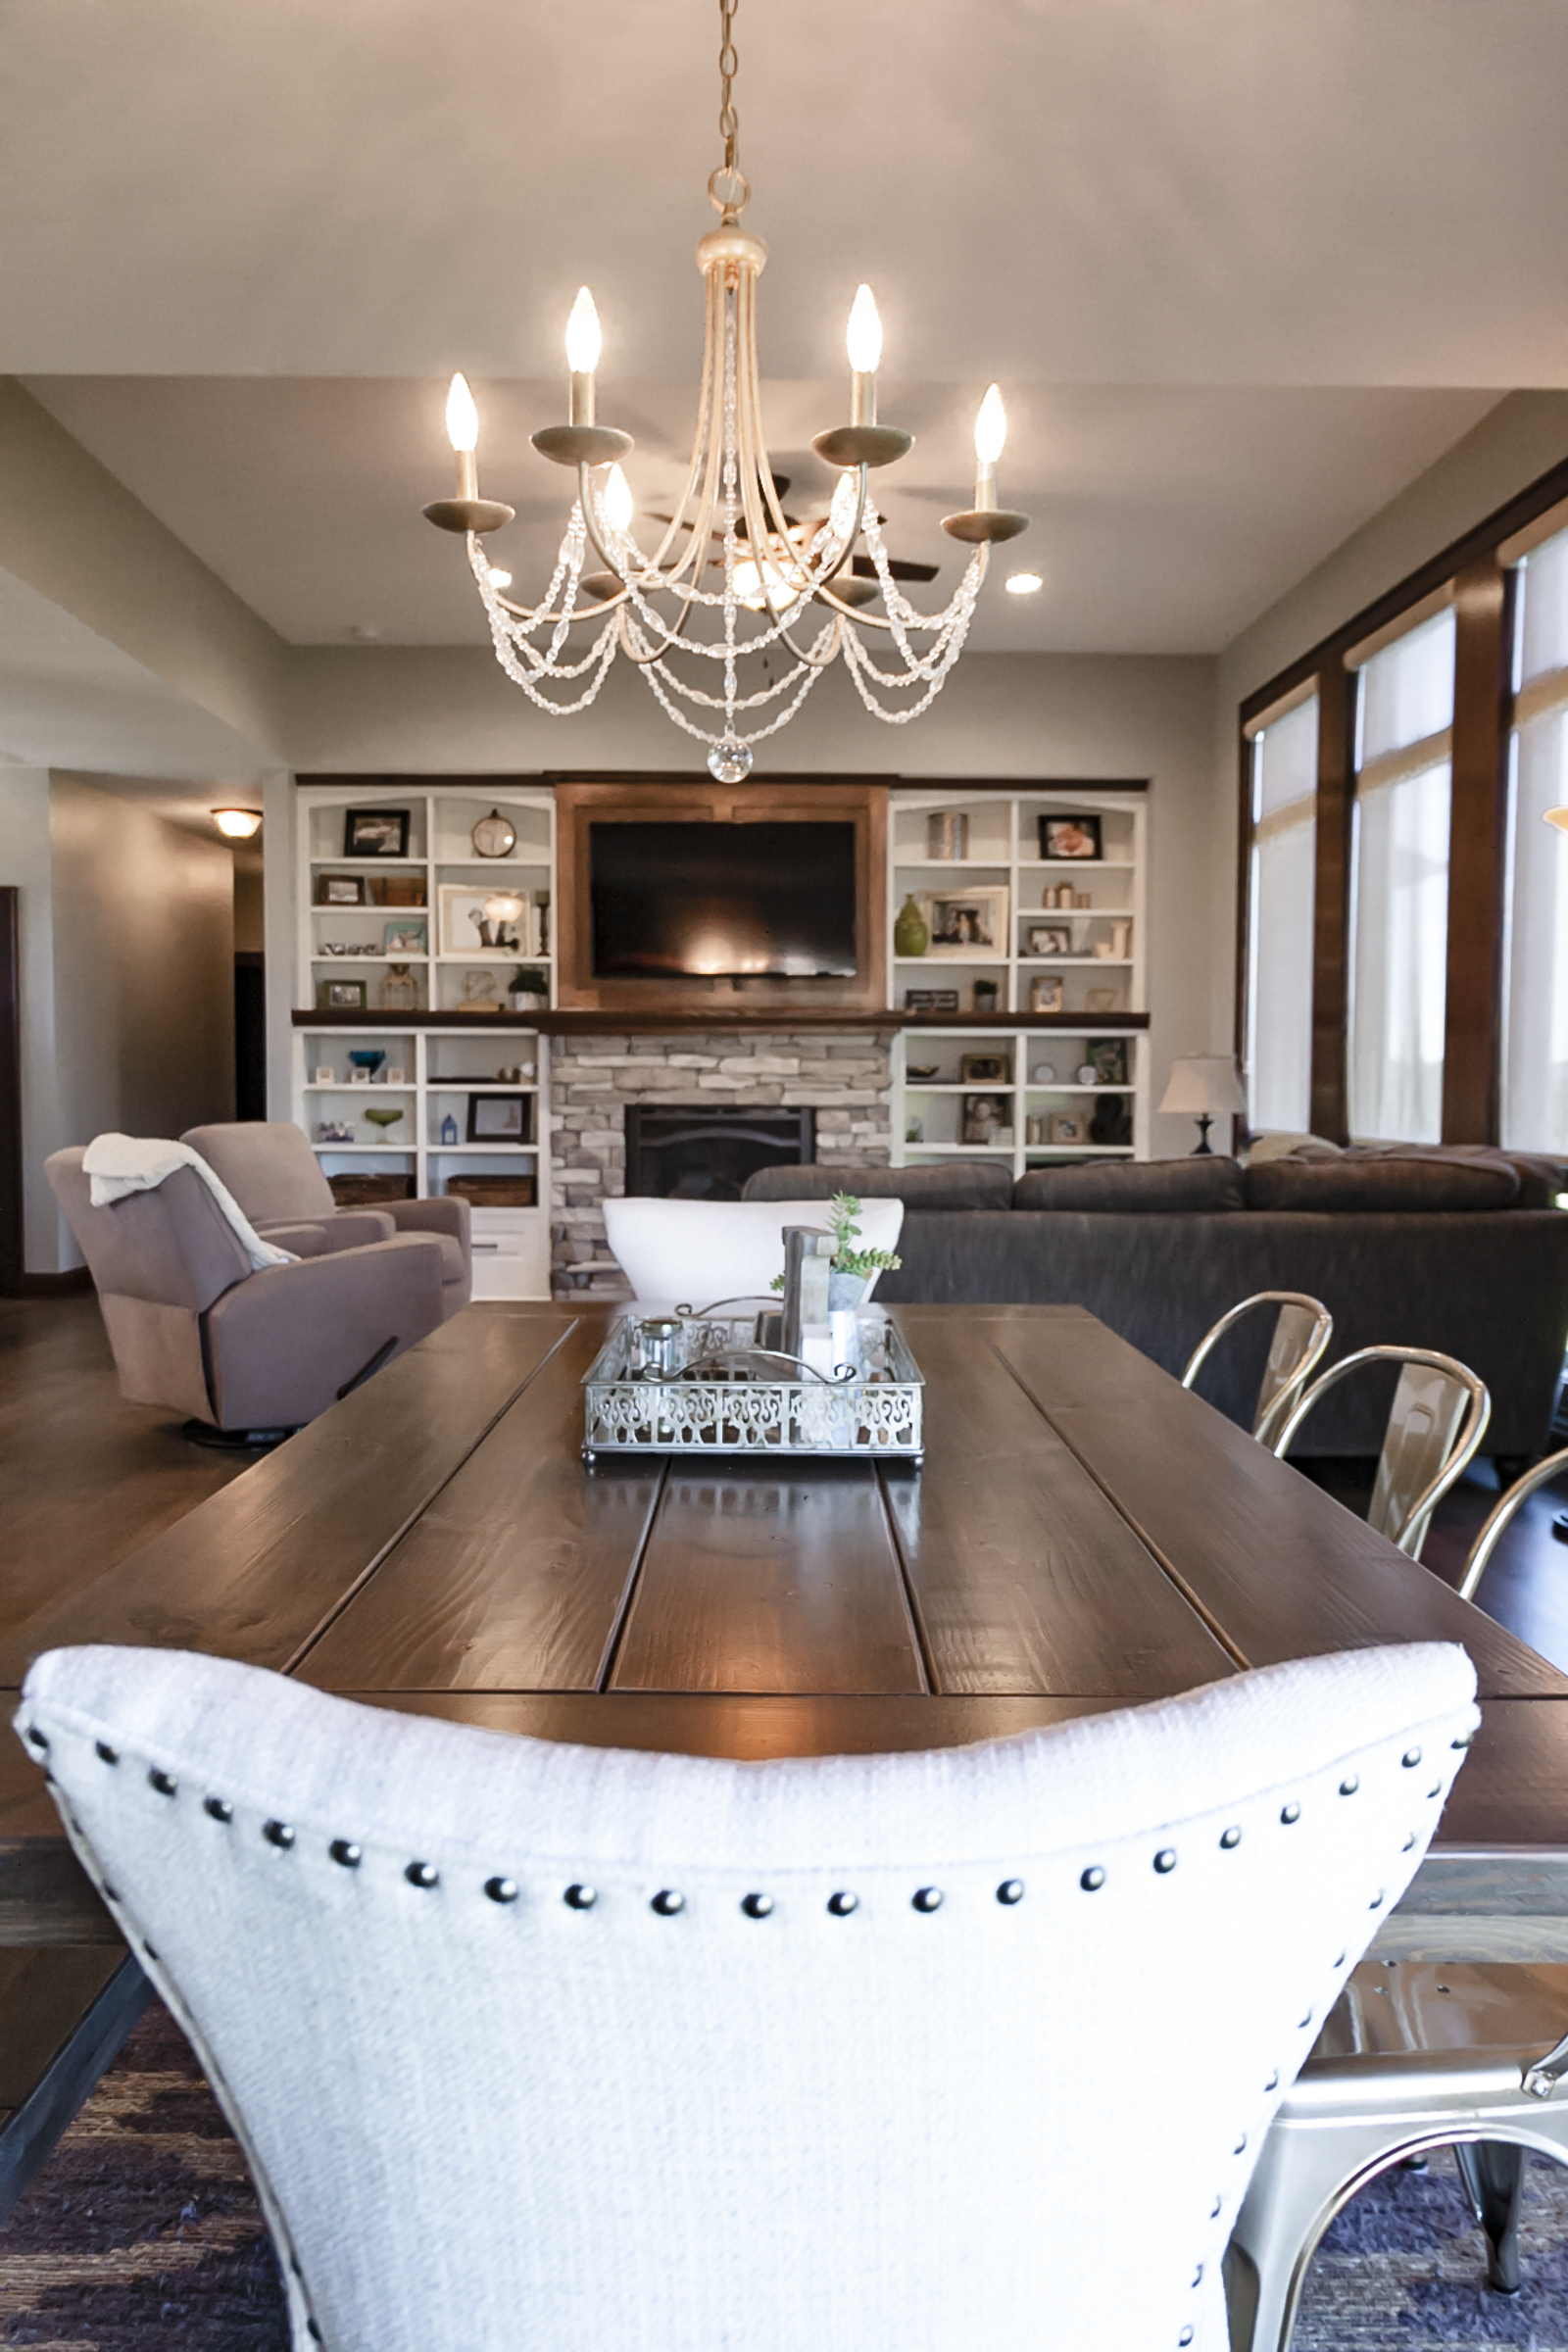 The Rustic Stain Blend Used For Flooring And Table Is Also An Accent Tone Found Throughout Granite Counter Tops Barn Door Of Walk In Kitchen